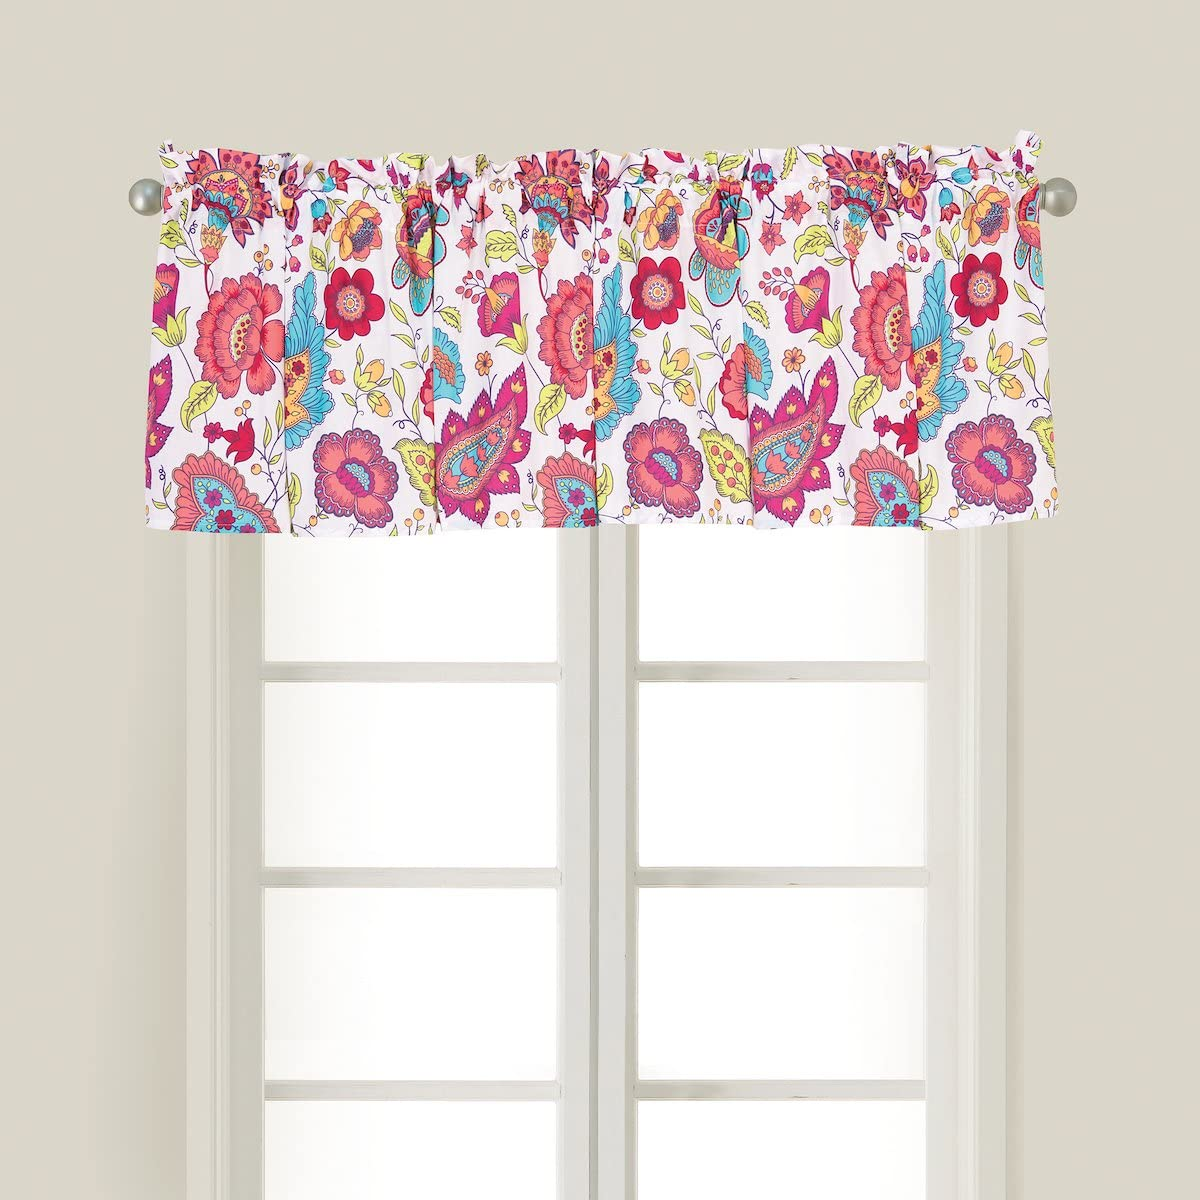 C&F Home Teagan Pink Paisley Girls Floral Botanical Spring Summer Cotton Bedroom Guestroom Premium Window Valance Valance Pink